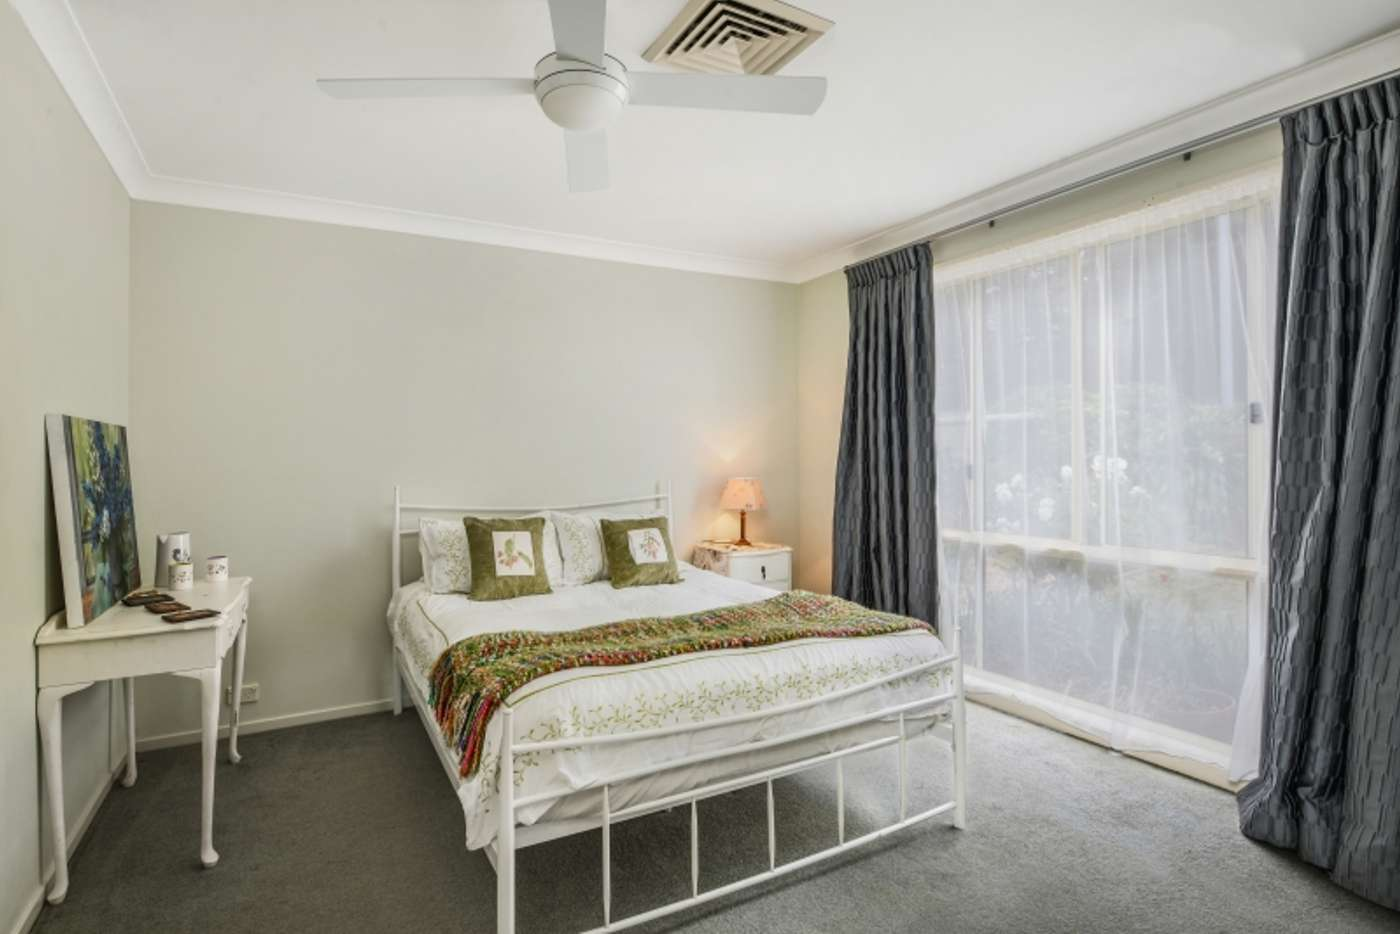 Sixth view of Homely house listing, 51 High Street, Robertson NSW 2577